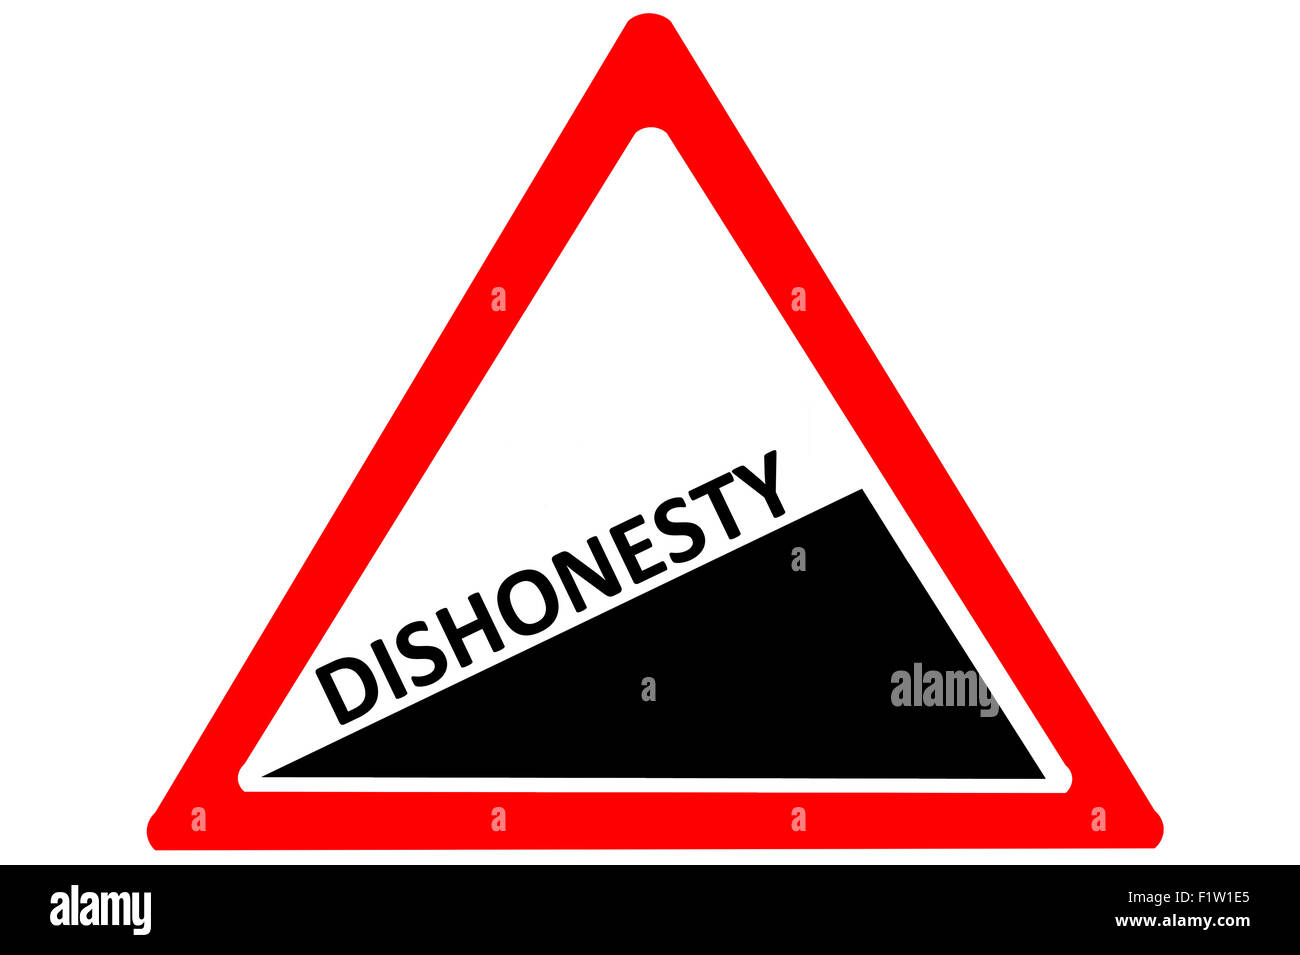 Dishonesty increasing warning road sign Red and White Triangle  isolated on a white background - Stock Image